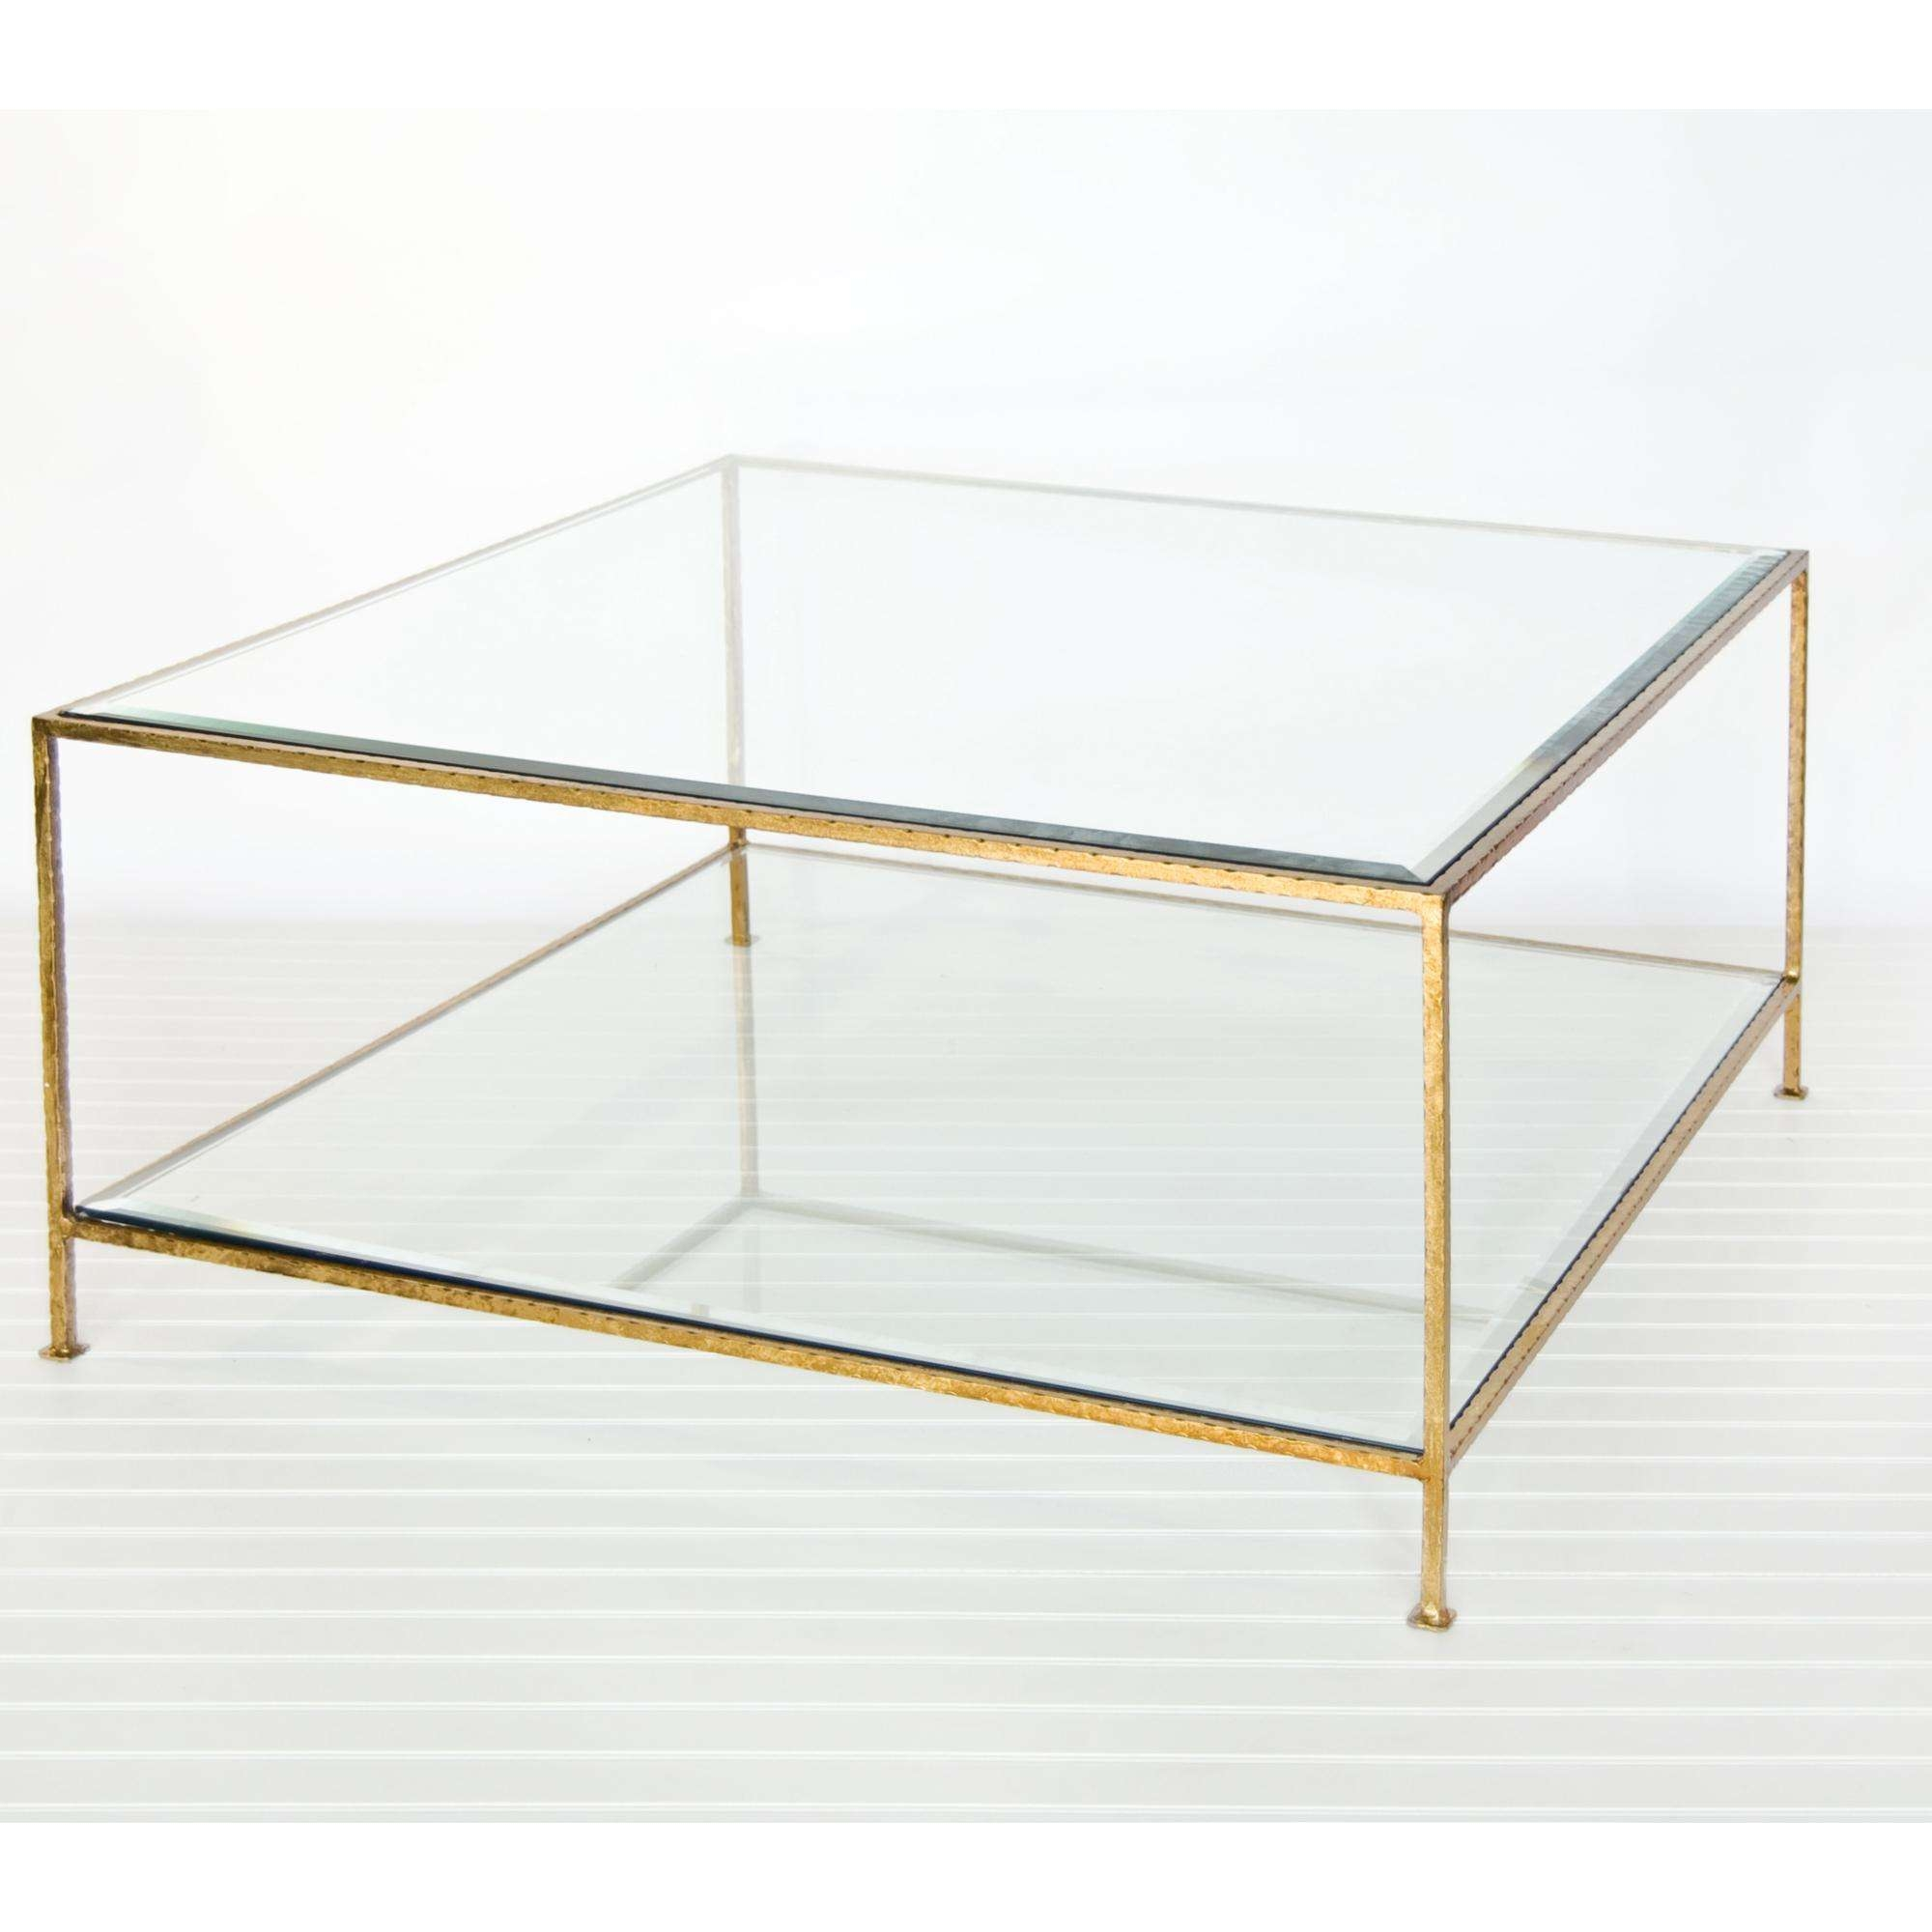 Coffee Tables Ideas: Sensational Glass And Gold Coffee Table Inside Current Glass Gold Coffee Tables (View 3 of 20)